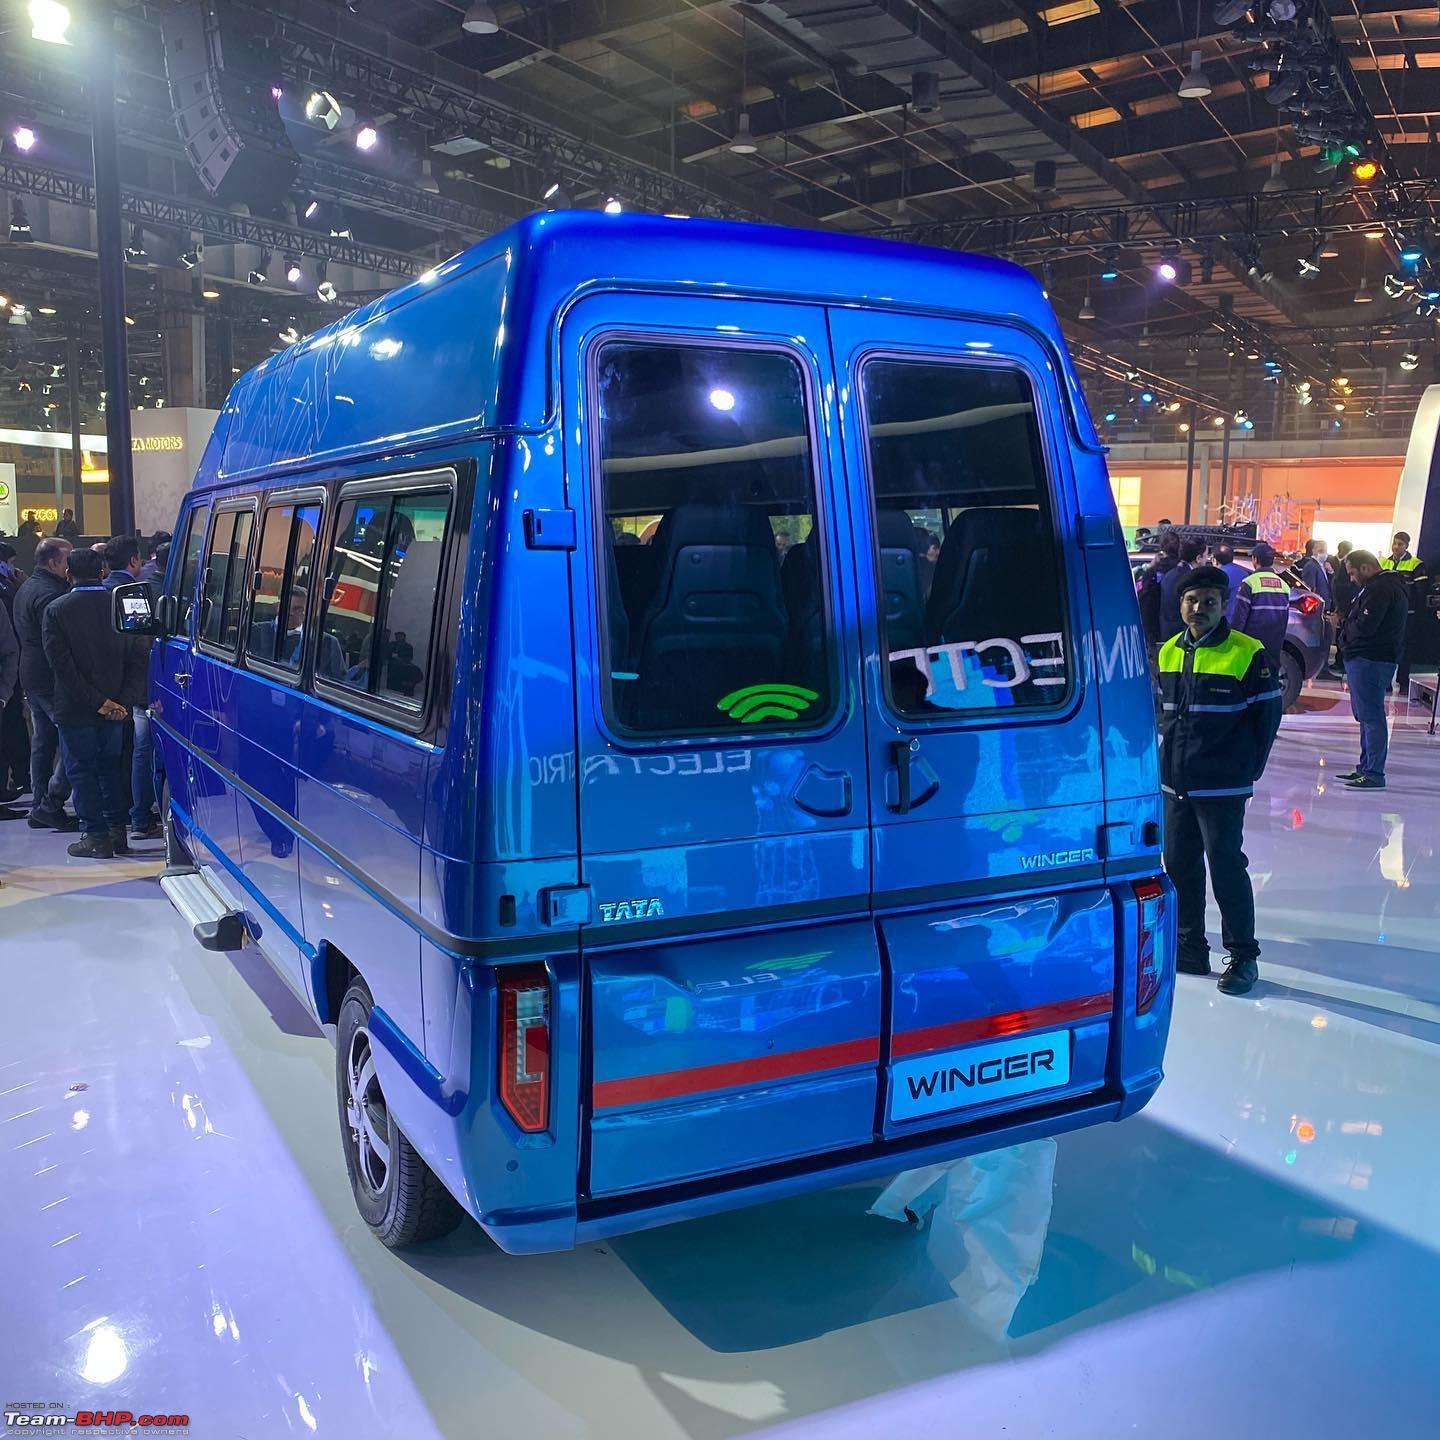 2020 - [Inde] Auto Expo - Page 2 1965694d1580912383-all-new-bs6-tata-winger-showcased-auto-expo-2020-84652719_2727214470694093_6065416140409012224_o